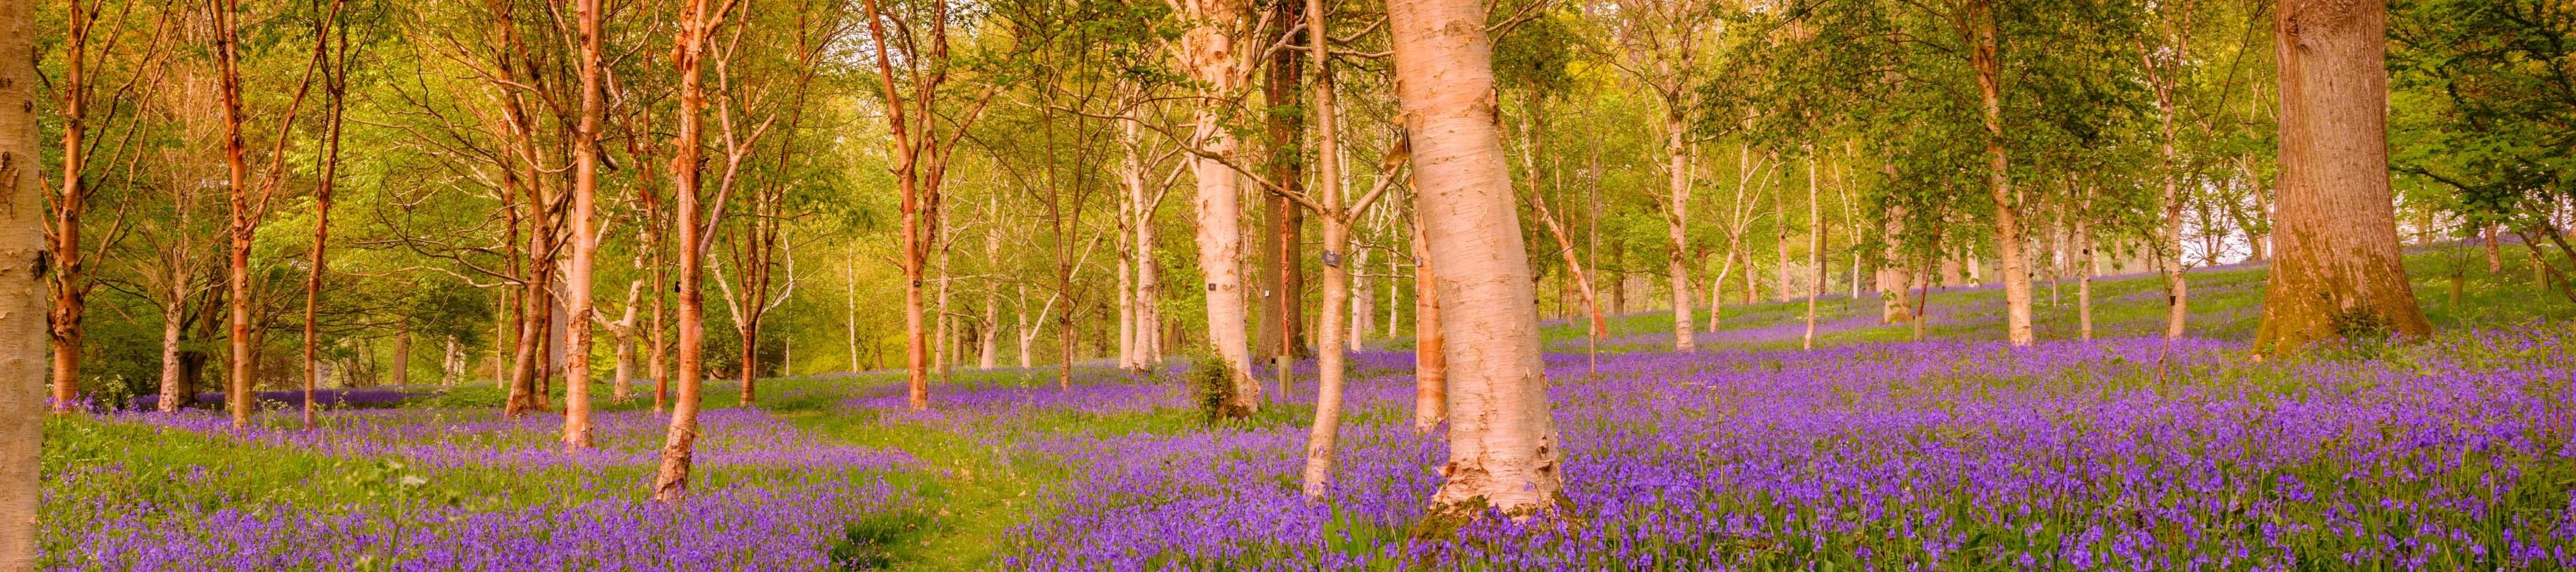 Bluebells and birch trees at Wakehurst